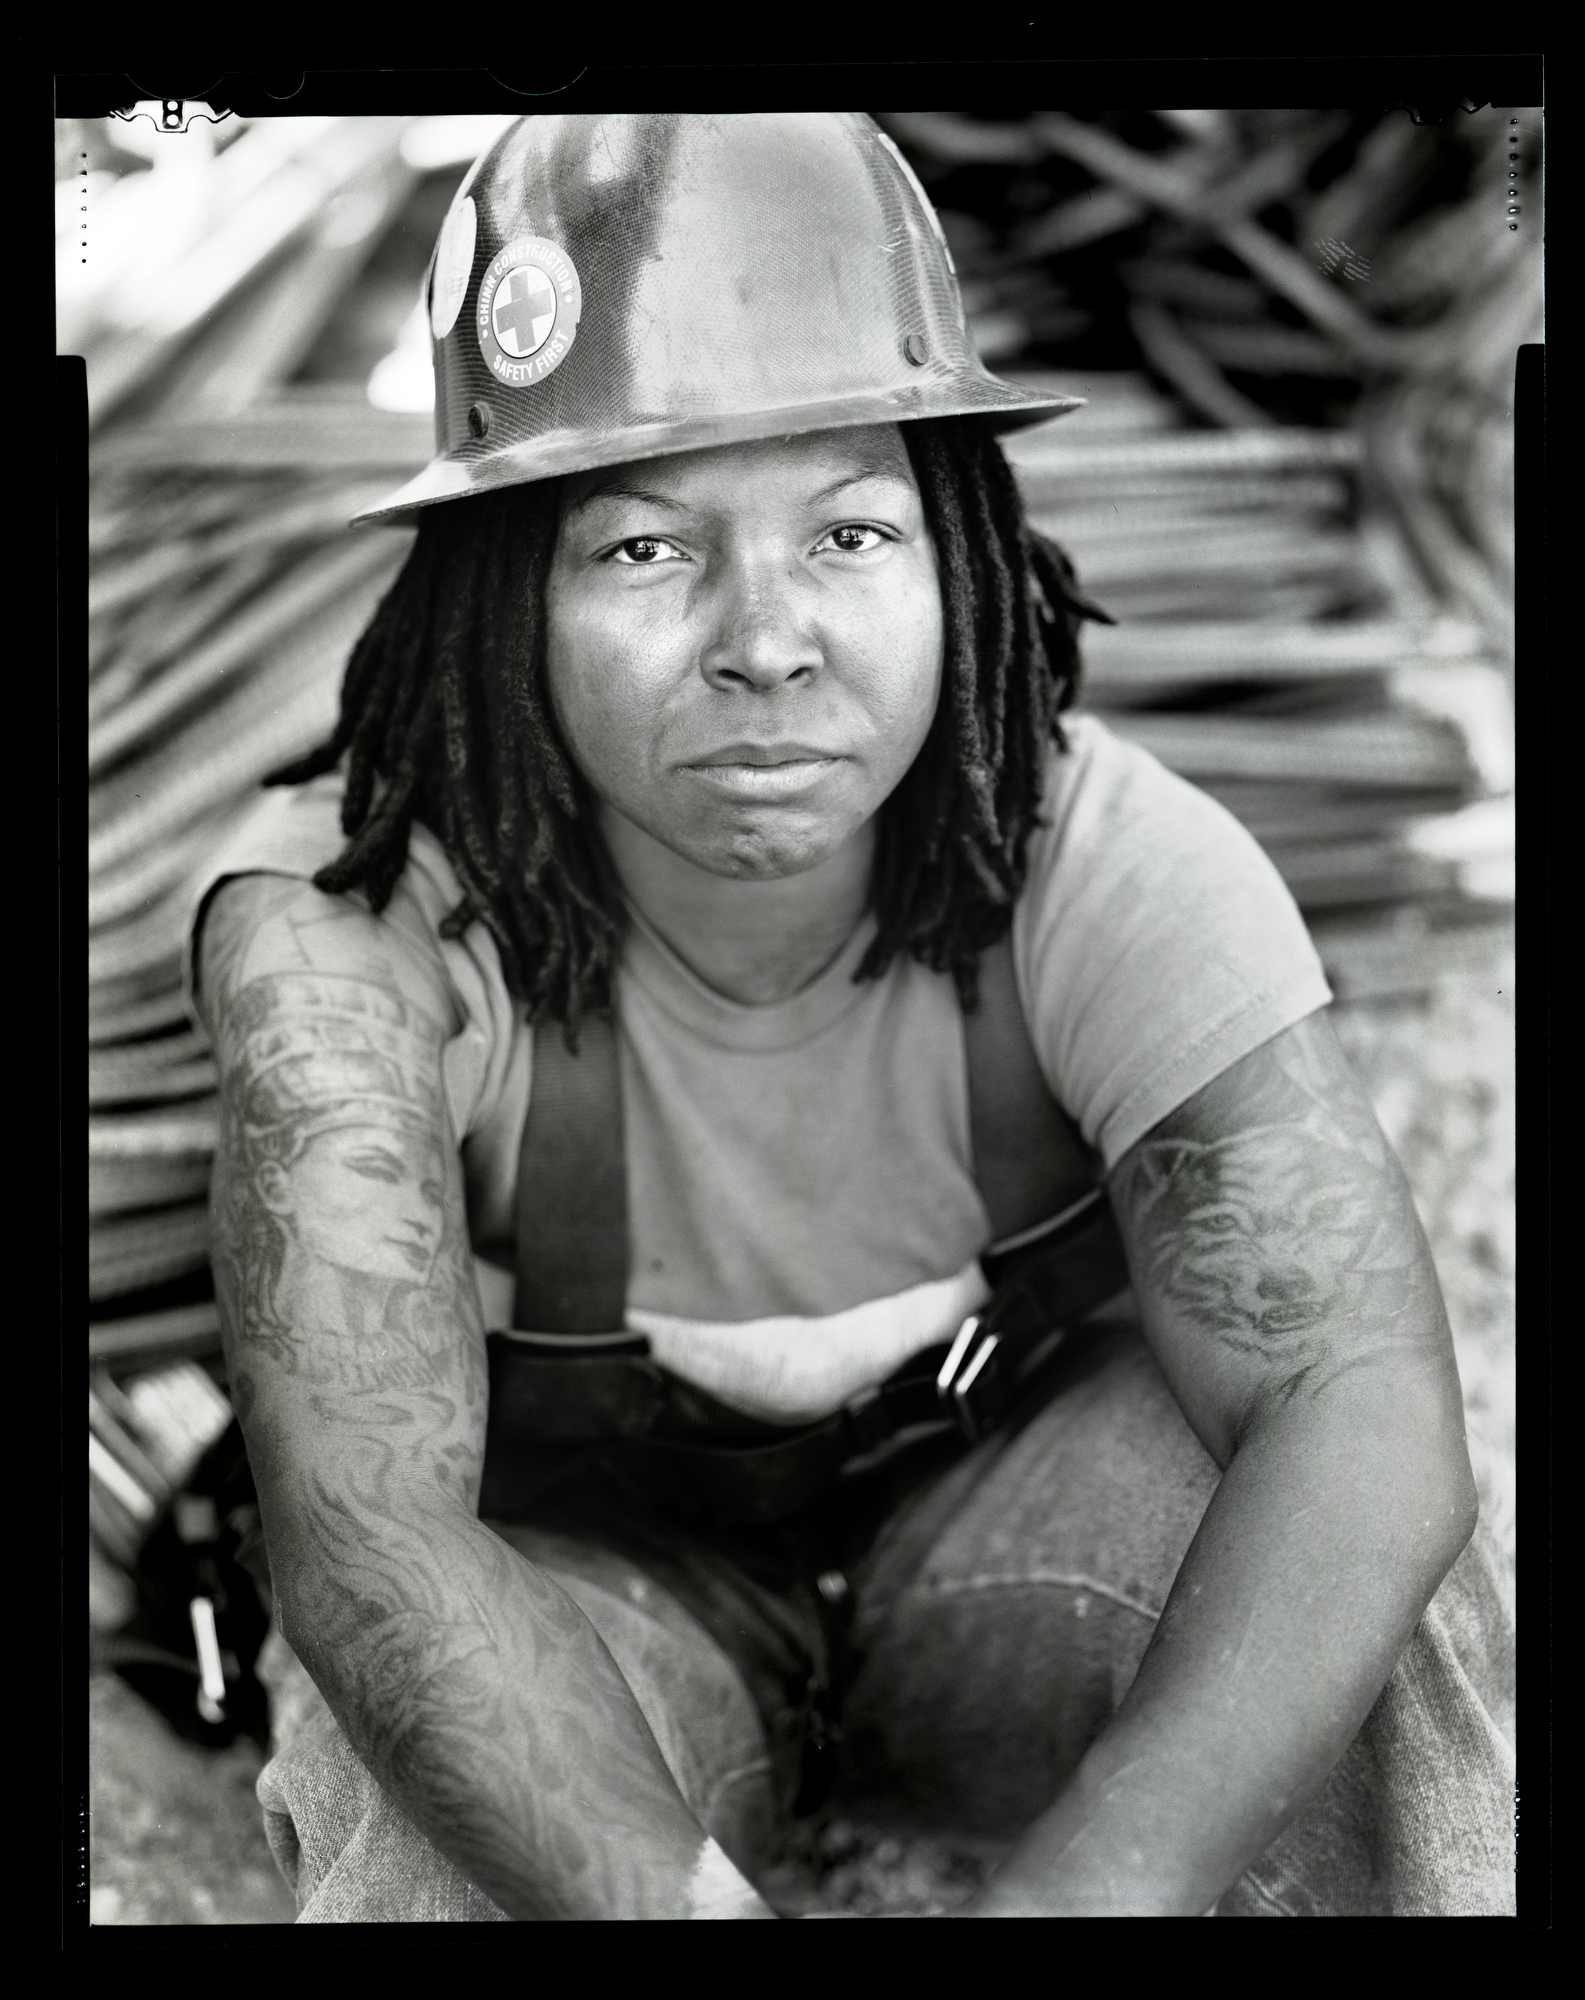 Kalena Firstrider is an ironworker.  Photographed June 23, 2015 for the Women in the Trades portrait series on a 4x5 camera with black and white film.